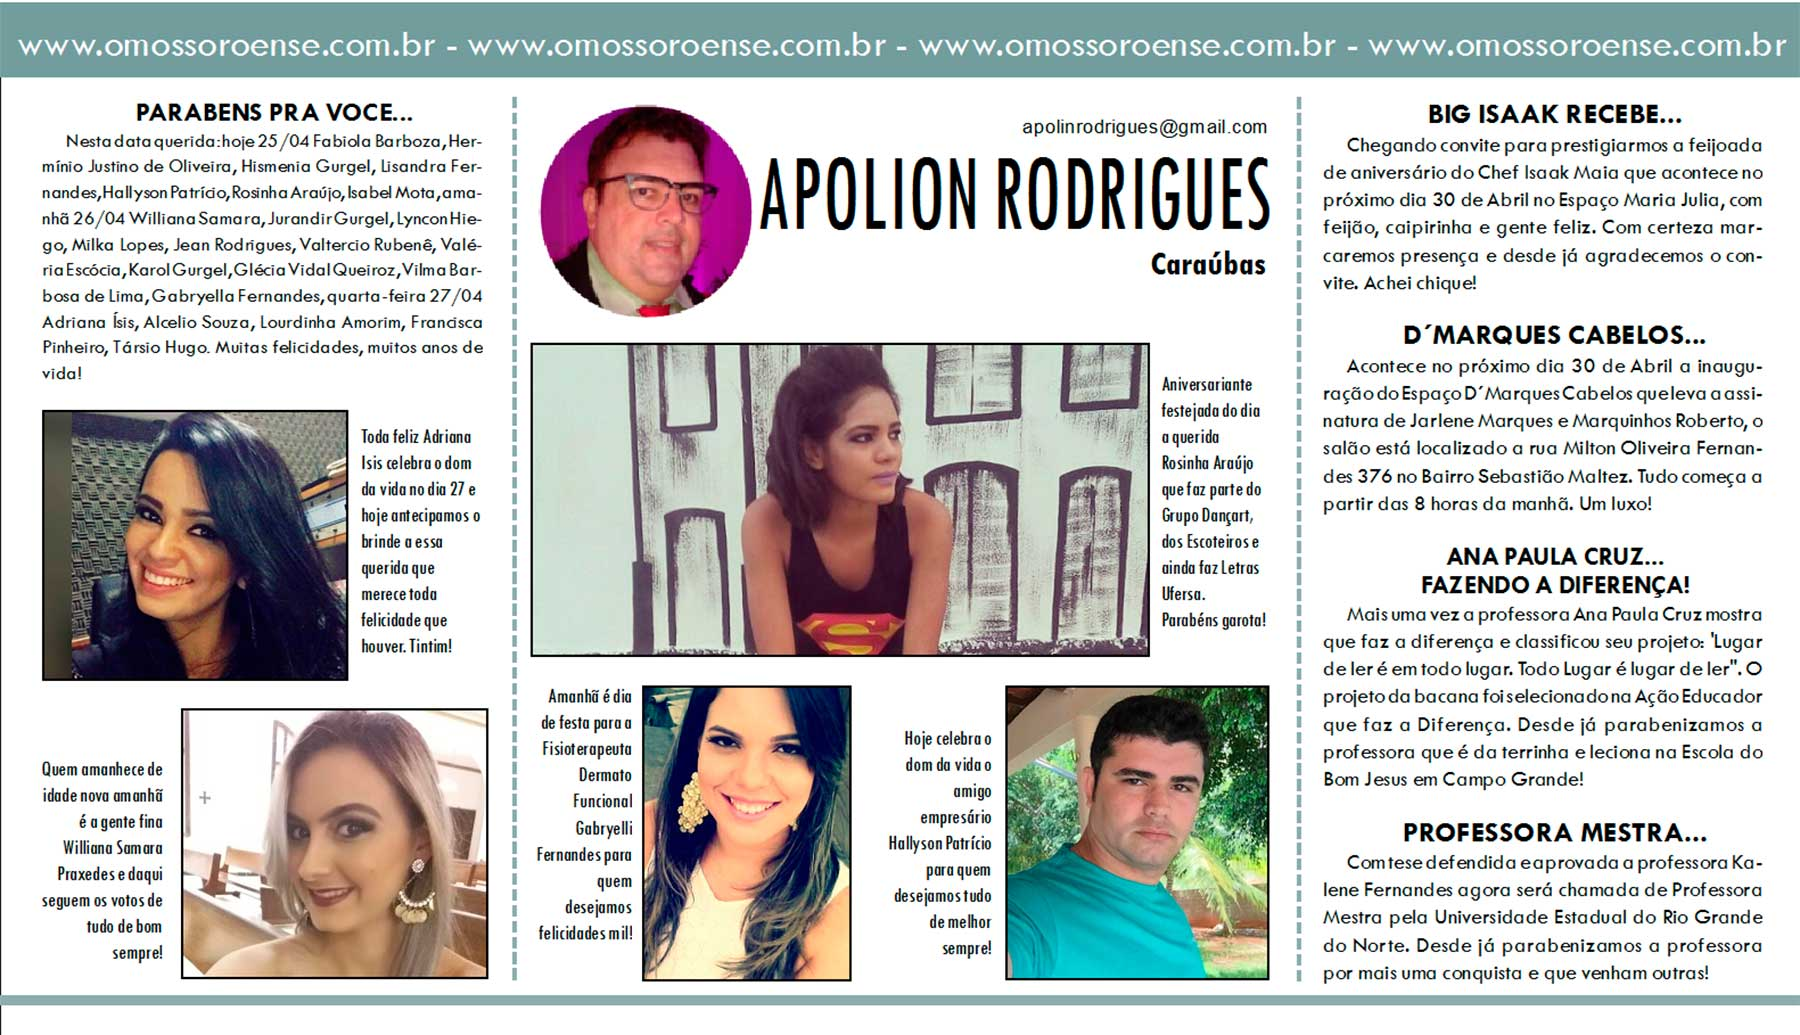 APOLION-RODRIGUES-25-04-2016